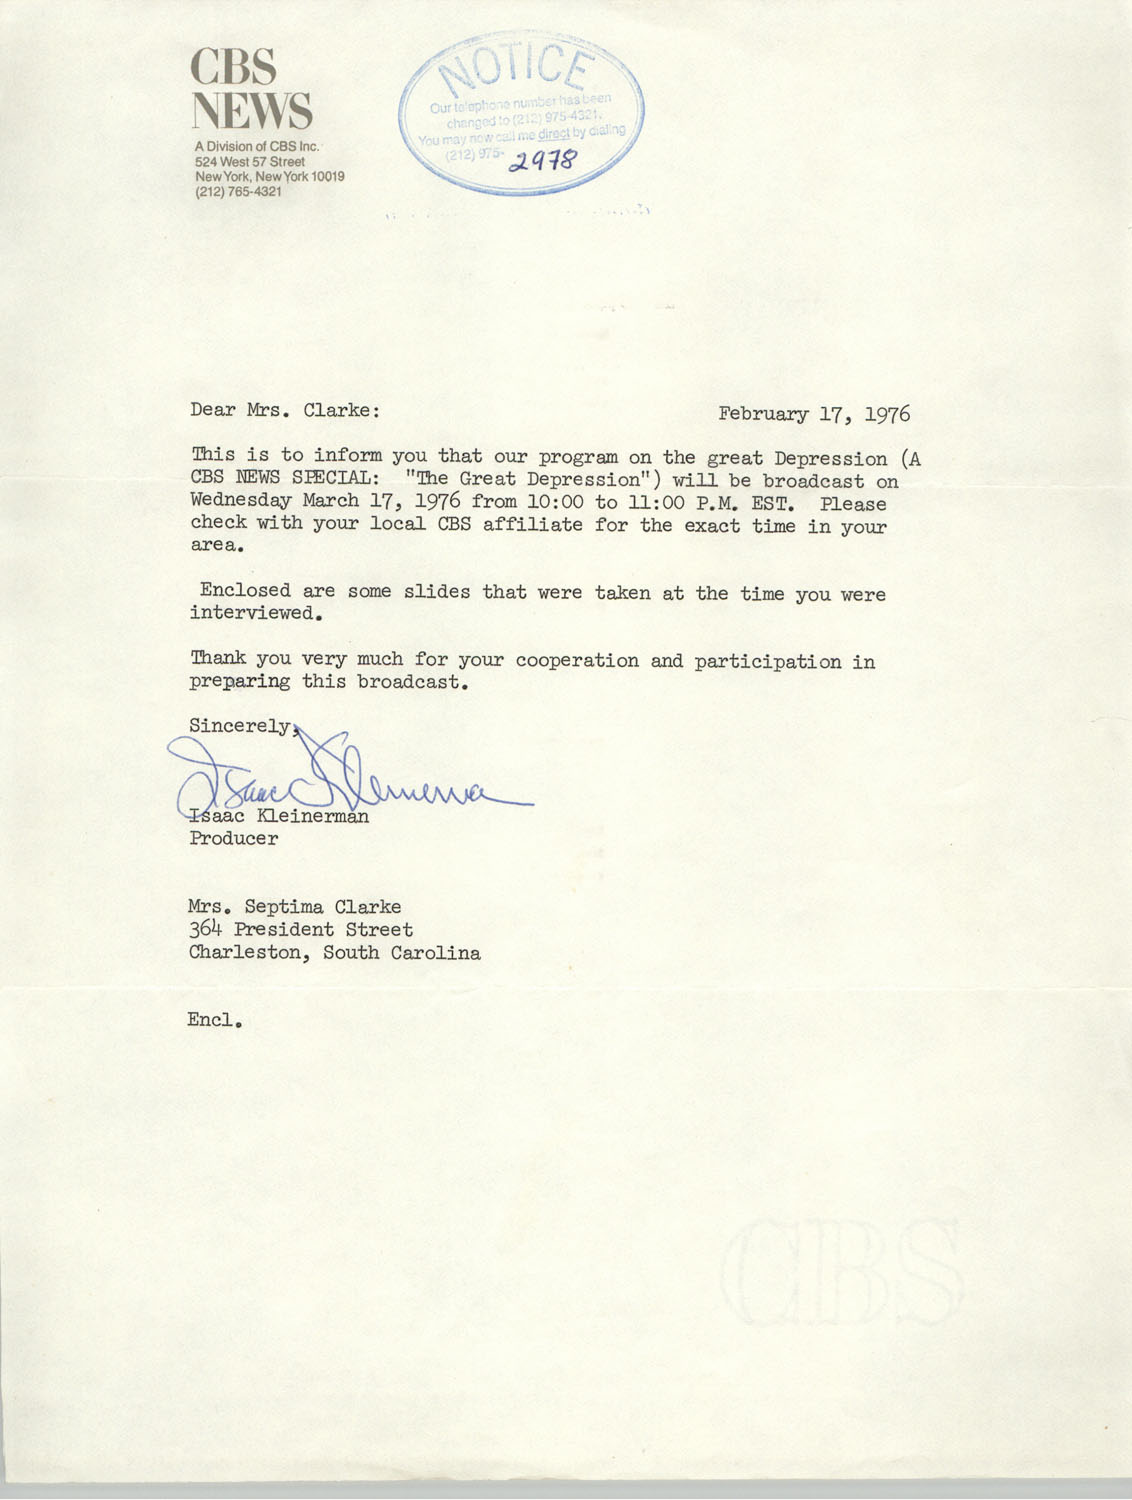 Letter from Isaac Kleinerman to Septima Clark, February 17, 1976